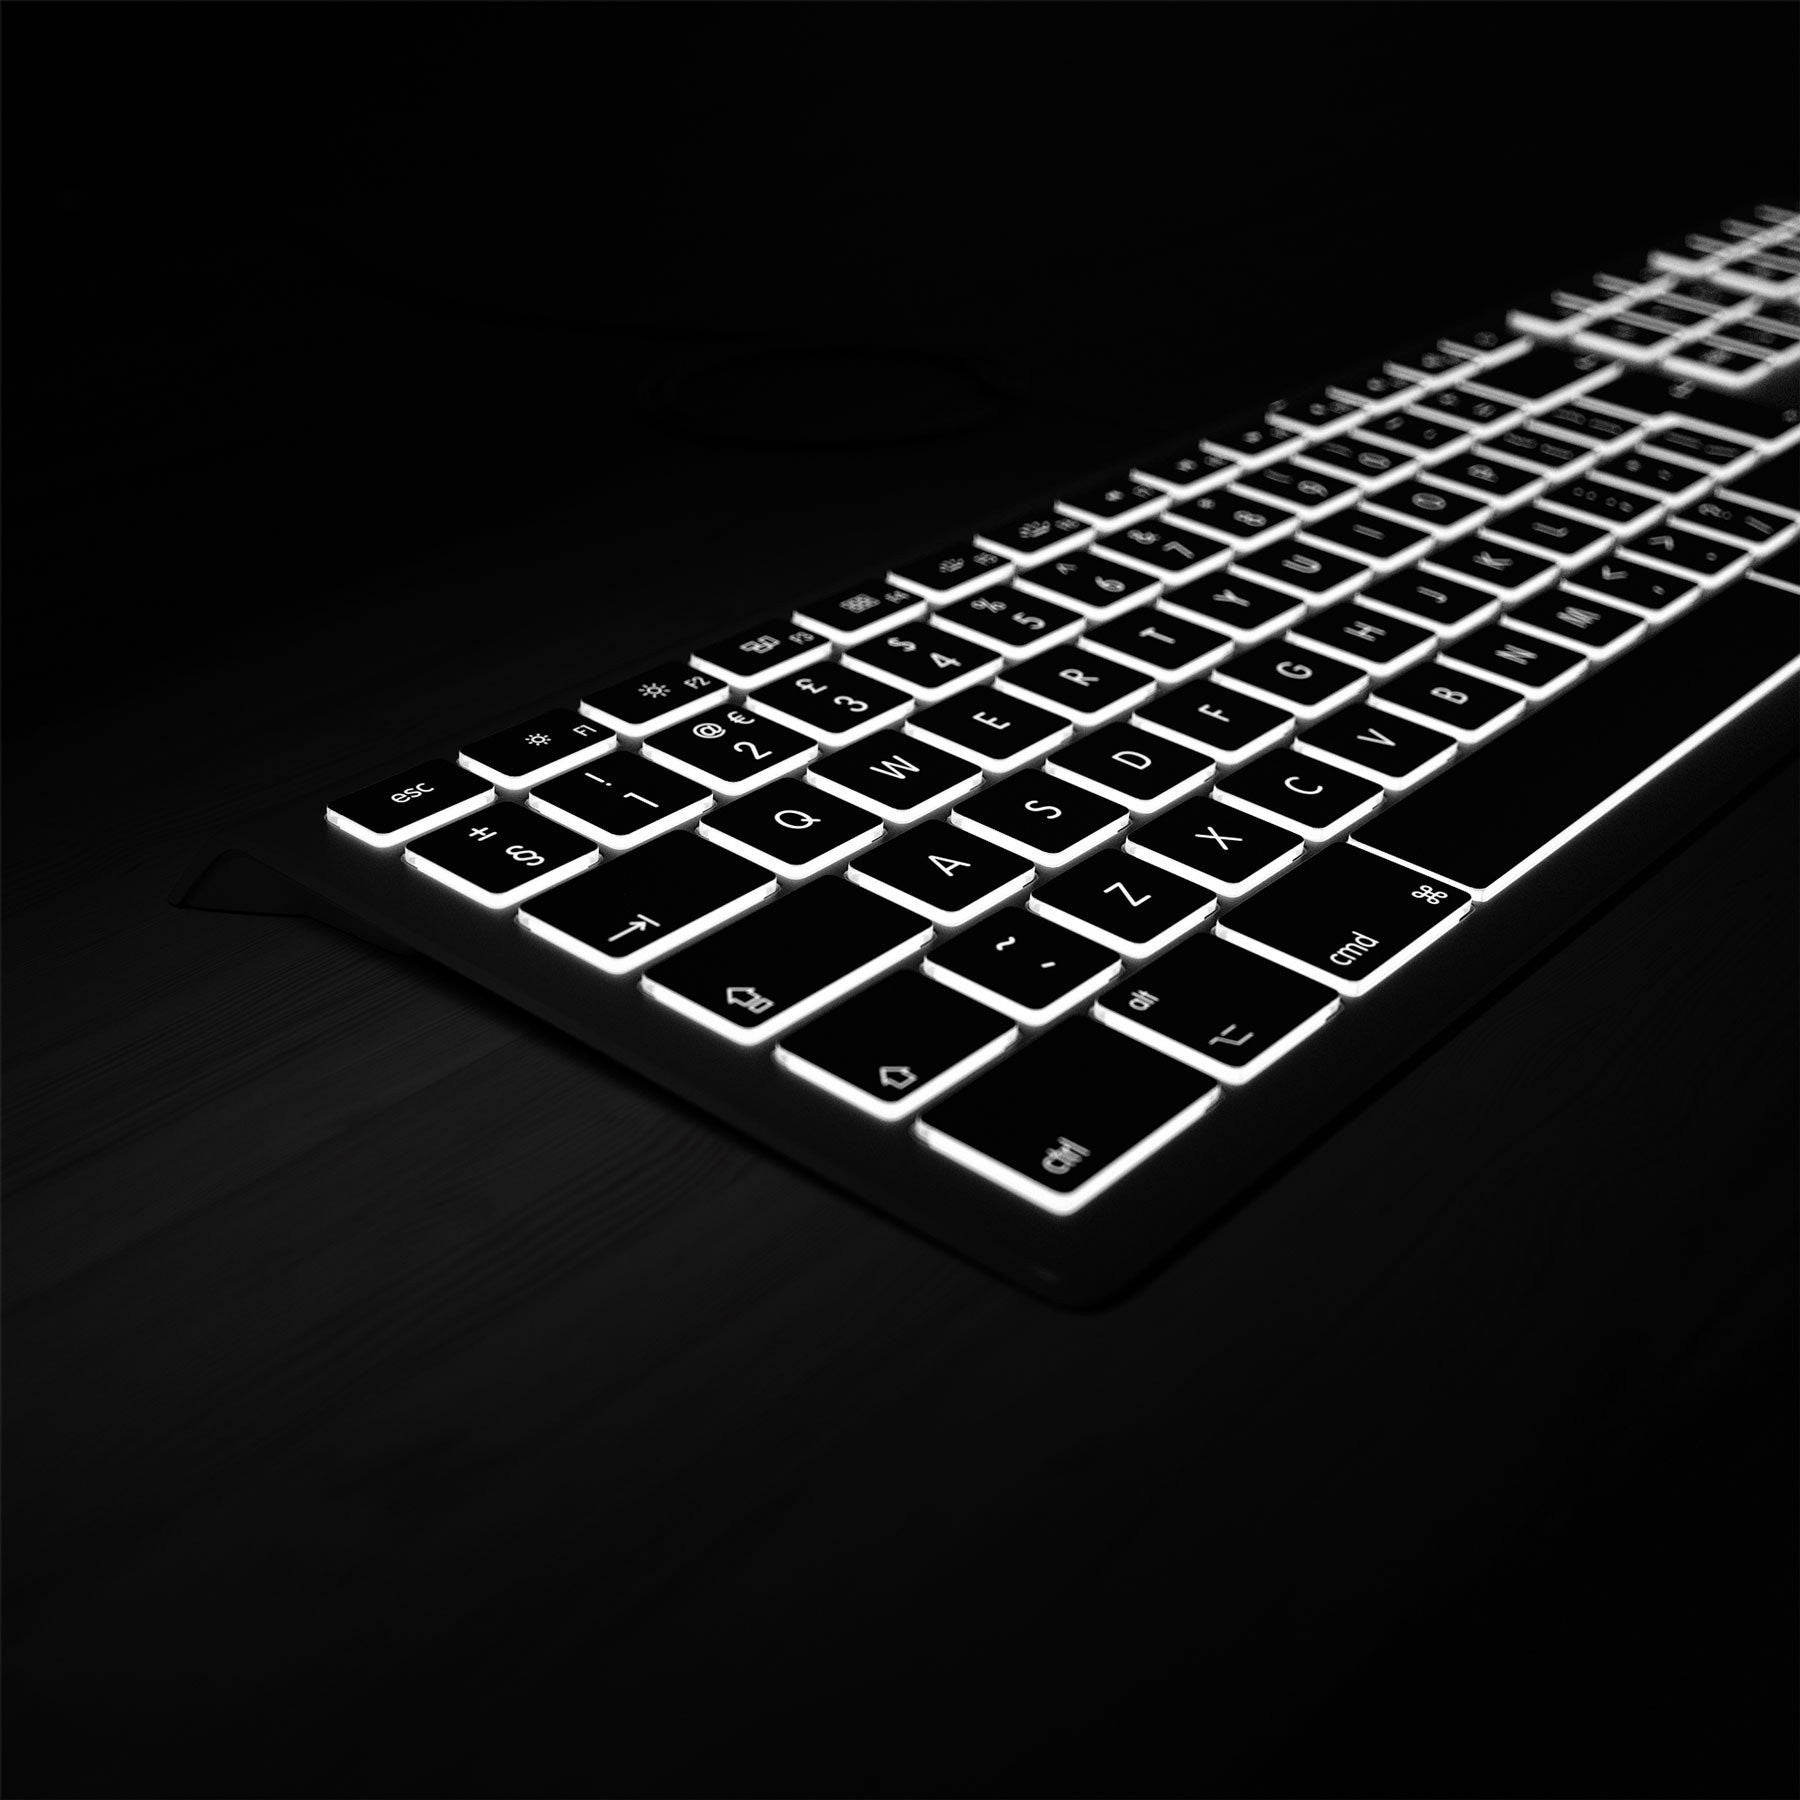 Backlit Mac Keyboard Standard Keyboard Editors Keys